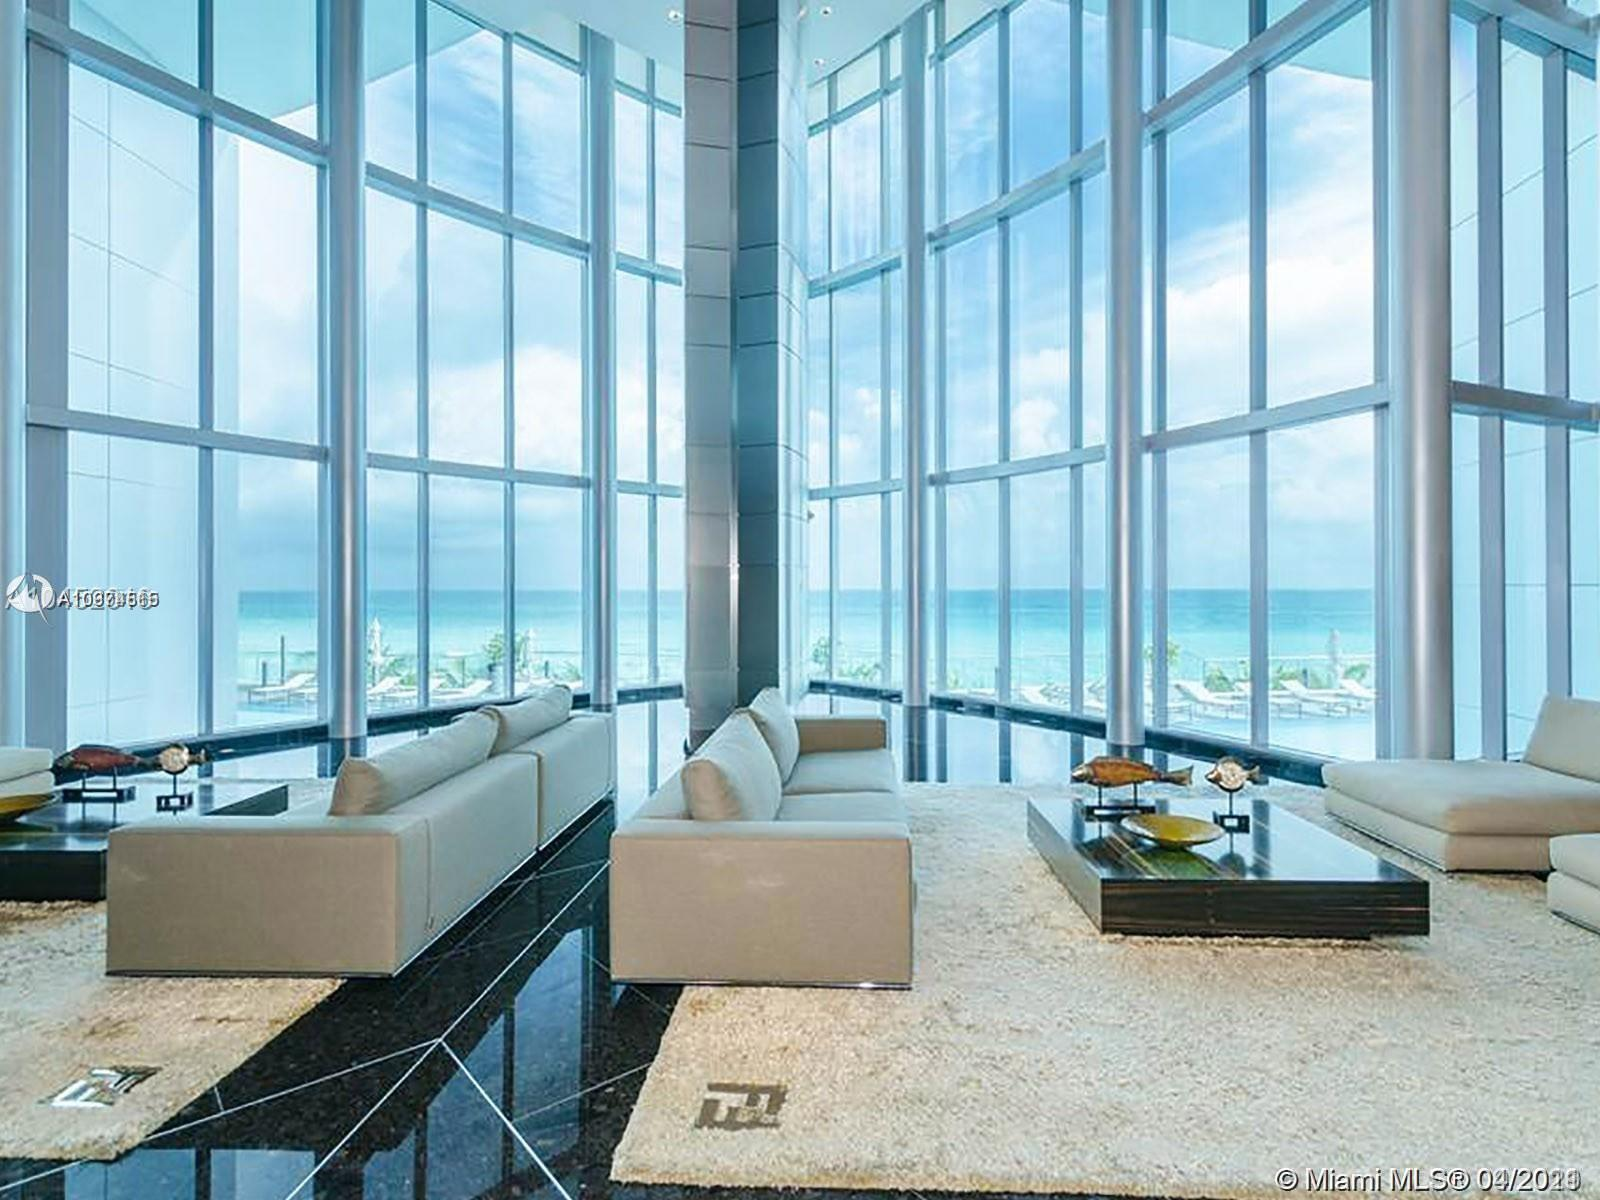 Private elevator will lead you to a unique high-end beach front 4BR/4BA apartment. Floor-to-ceiling impact windows and oversized terraces are offering mesmerizing 180 degrees view of the ocean, city and intracoastal views. Spacious bedrooms with spacious walk-in closets, modern Italian kitchen with state-of-the-art Miele and Sub-Zero appliances and wine cooler. Master bathroom with Whirlpool bathtubs and walk-in shower. Unit equipped with inbuilt smart home technology features that includes a wireless monitor for interactive communication. Air conditioned resident storage facilities. Ultra-luxurious amenities include the gorgeous private beach, beach side café, state-of-the-art gym, spa and massage rooms, kids playroom, business center with meeting rooms and offices and more.